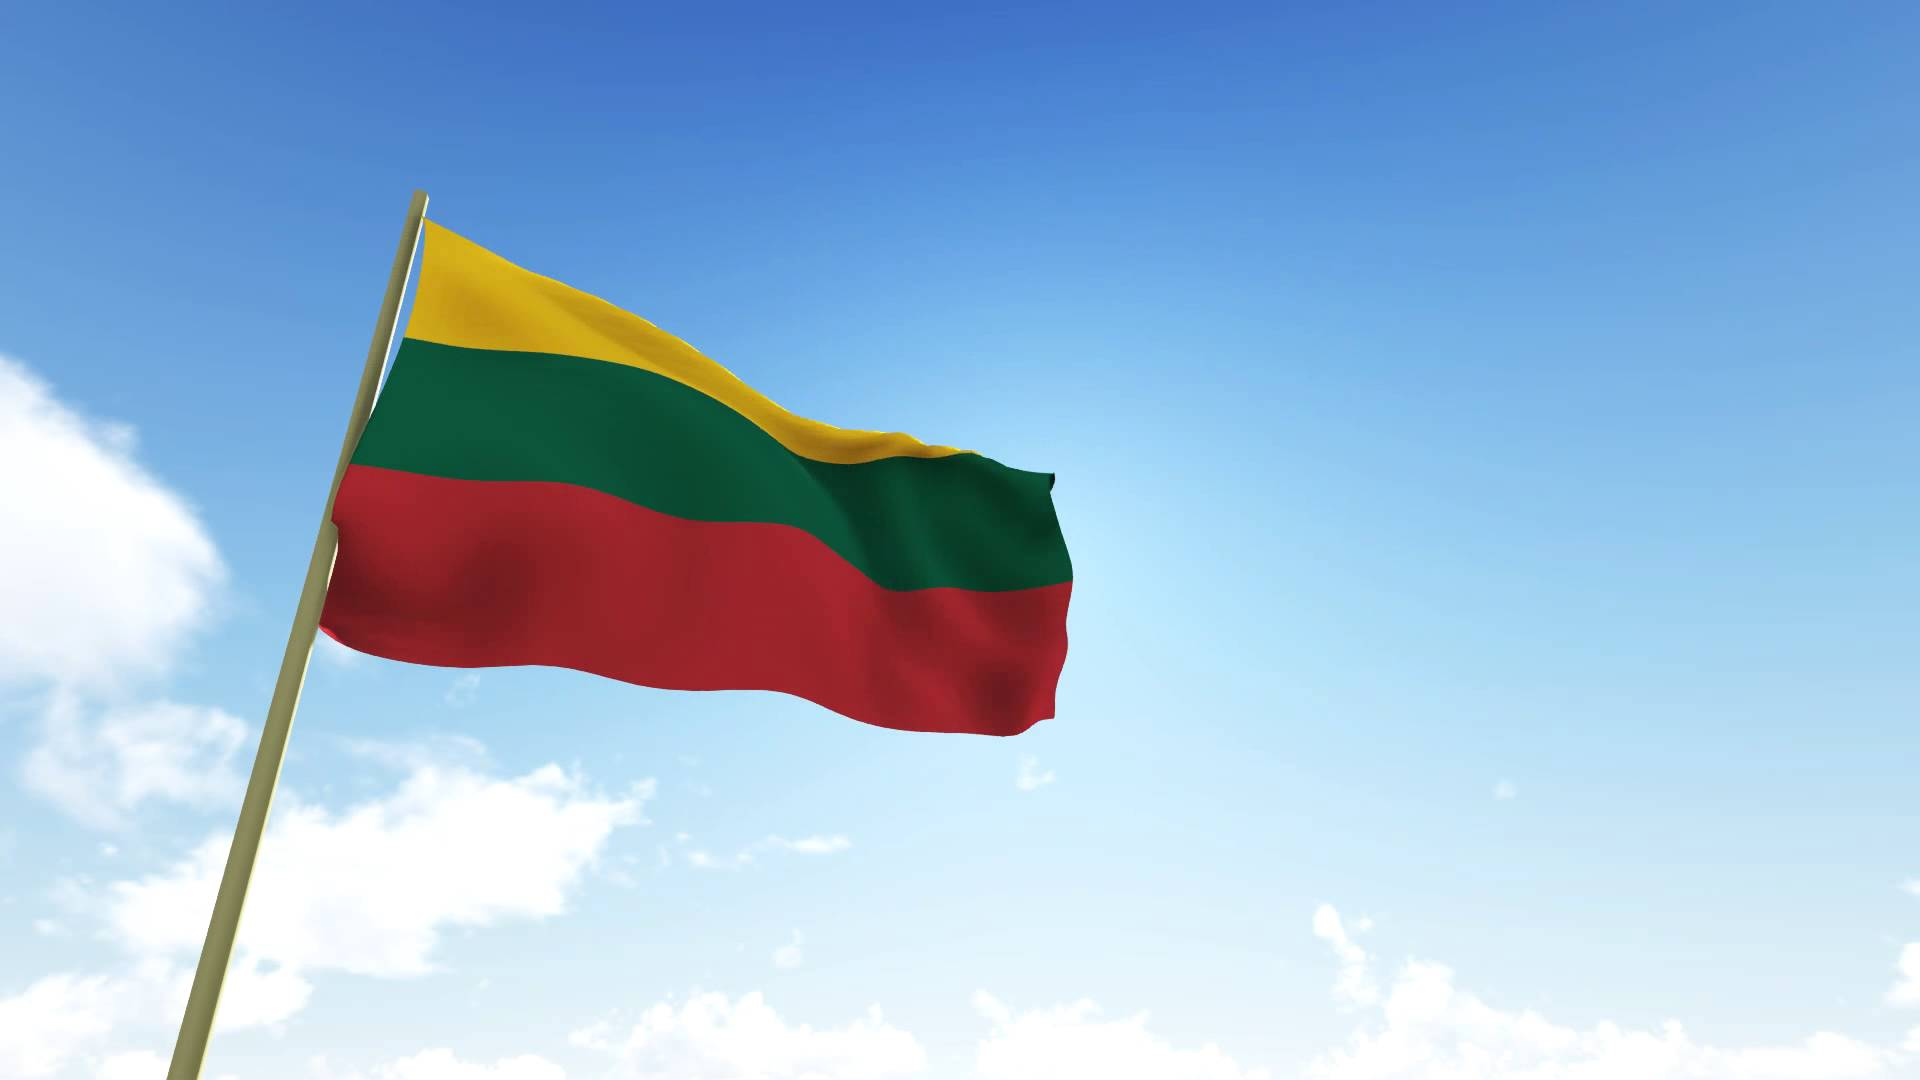 Flag Of Lithuania High Quality Background on Wallpapers Vista